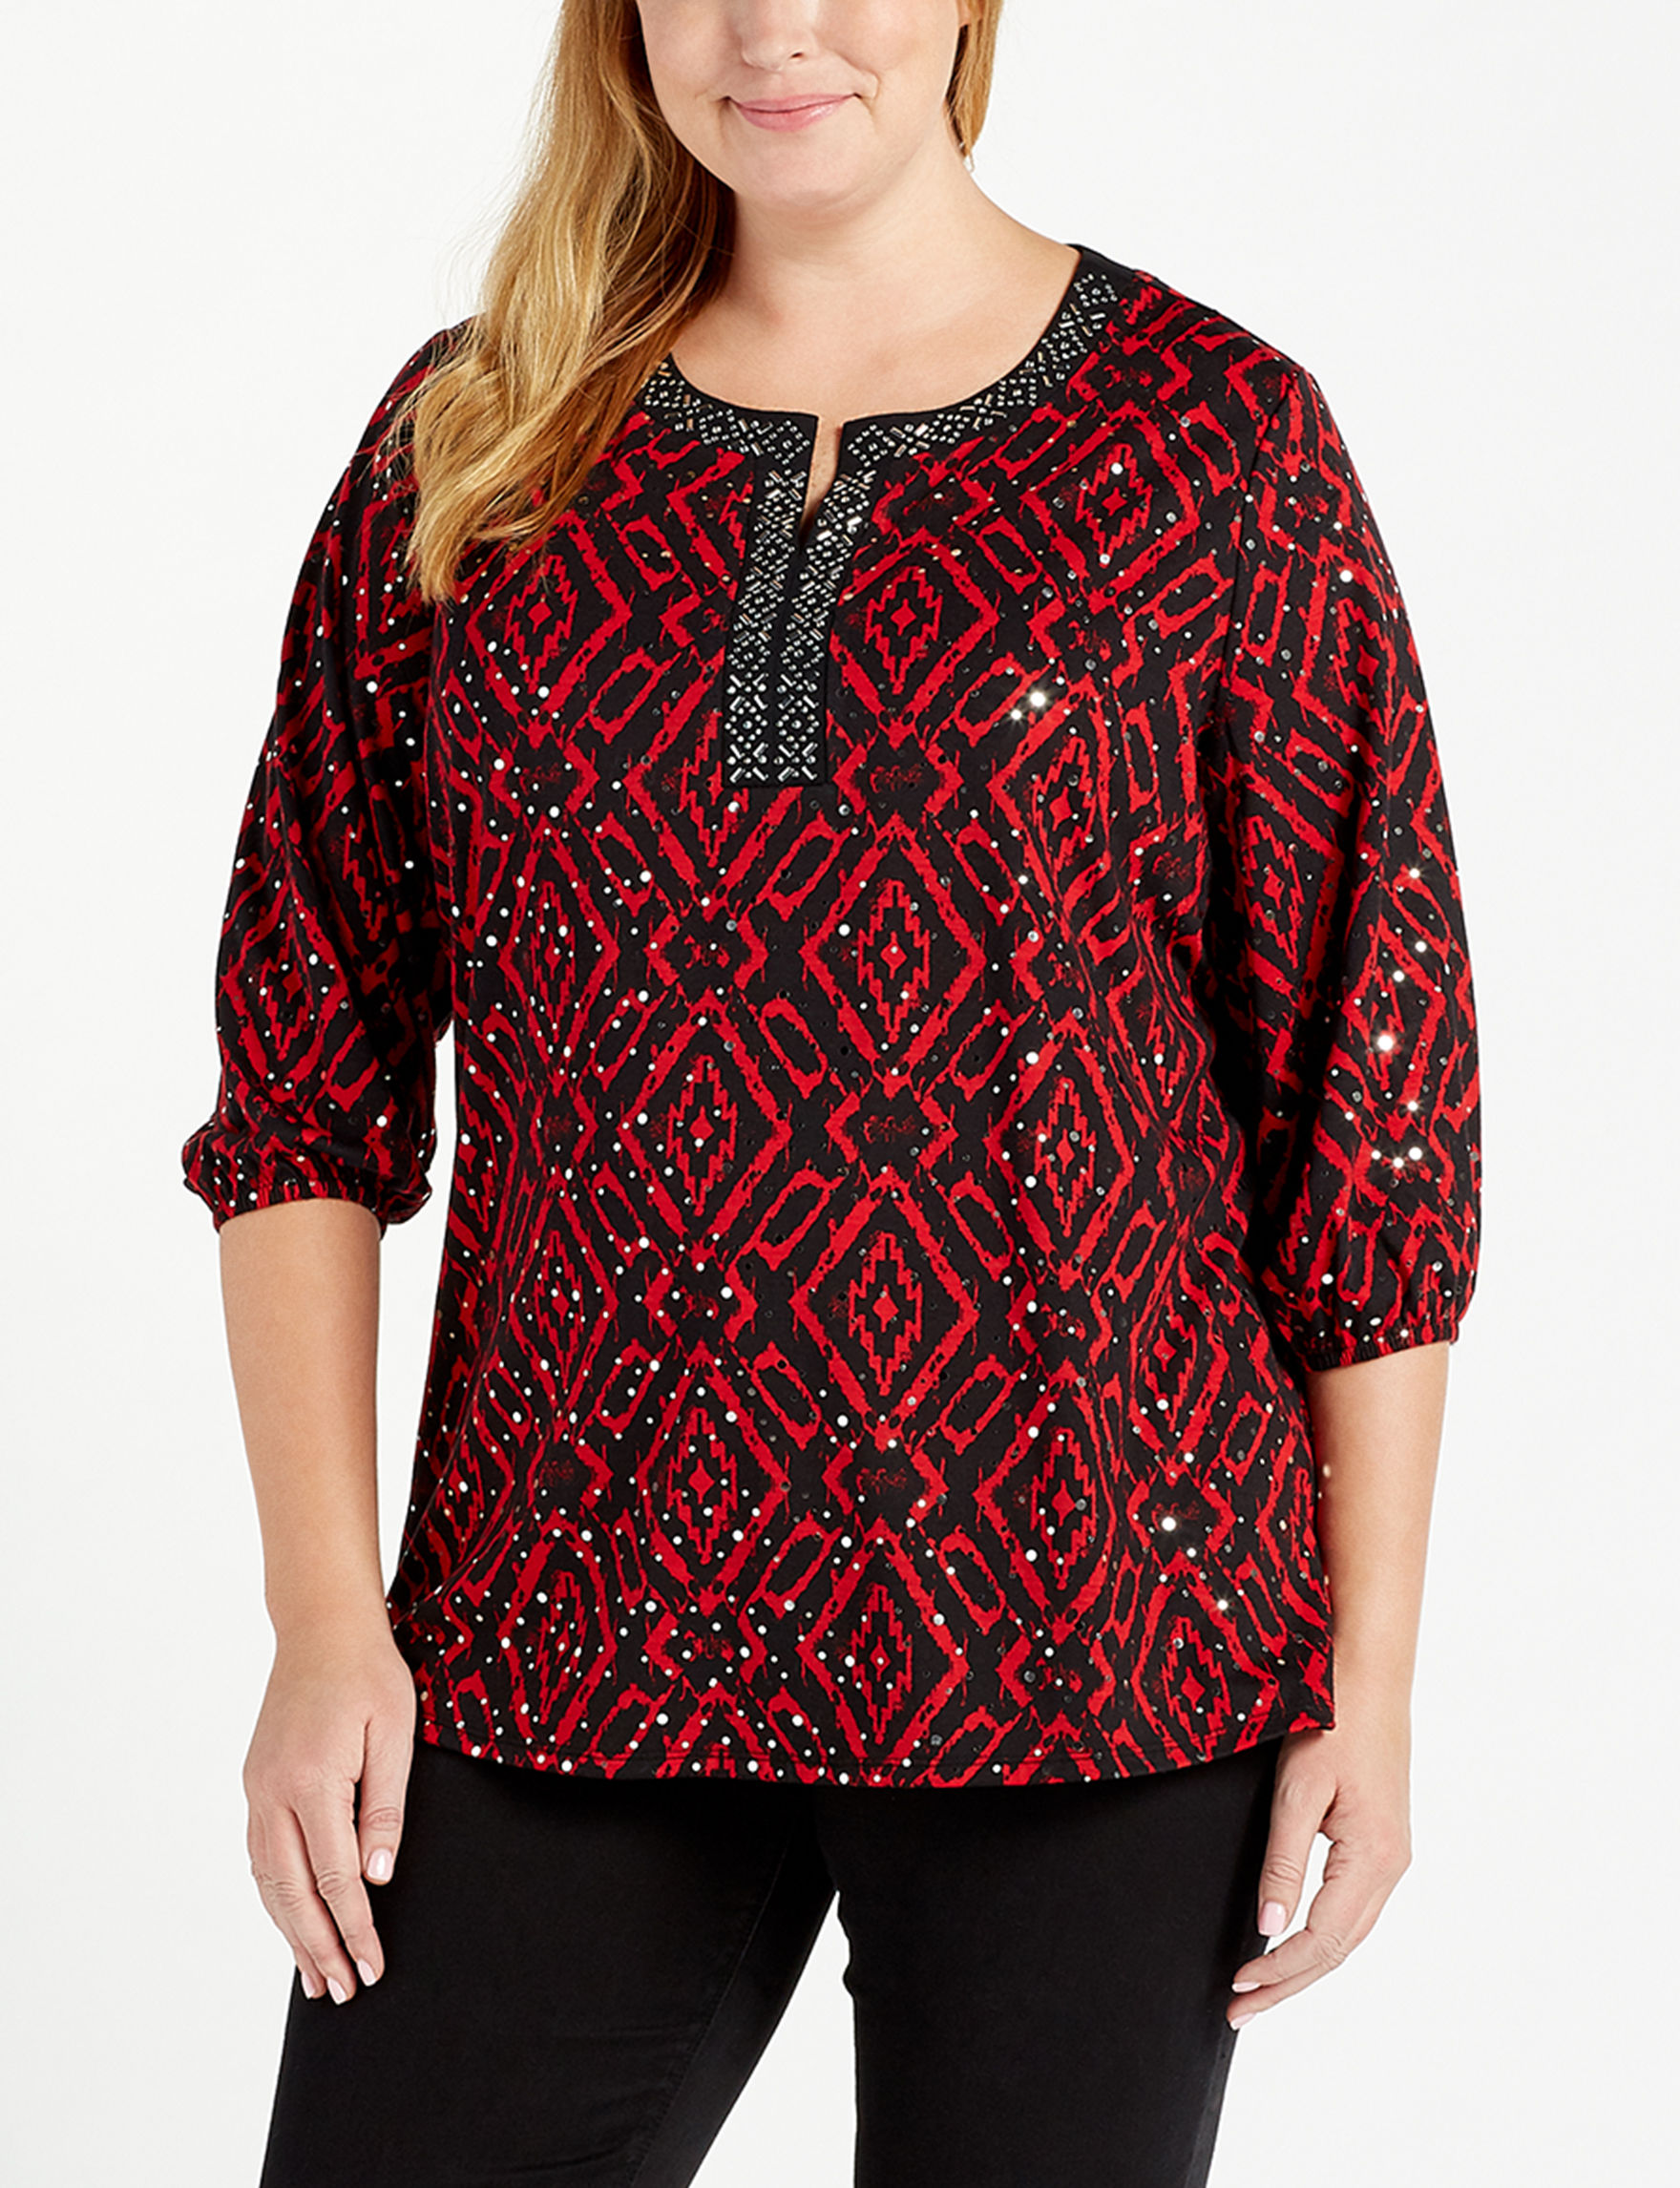 Cathy Daniels Black / Red Shirts & Blouses